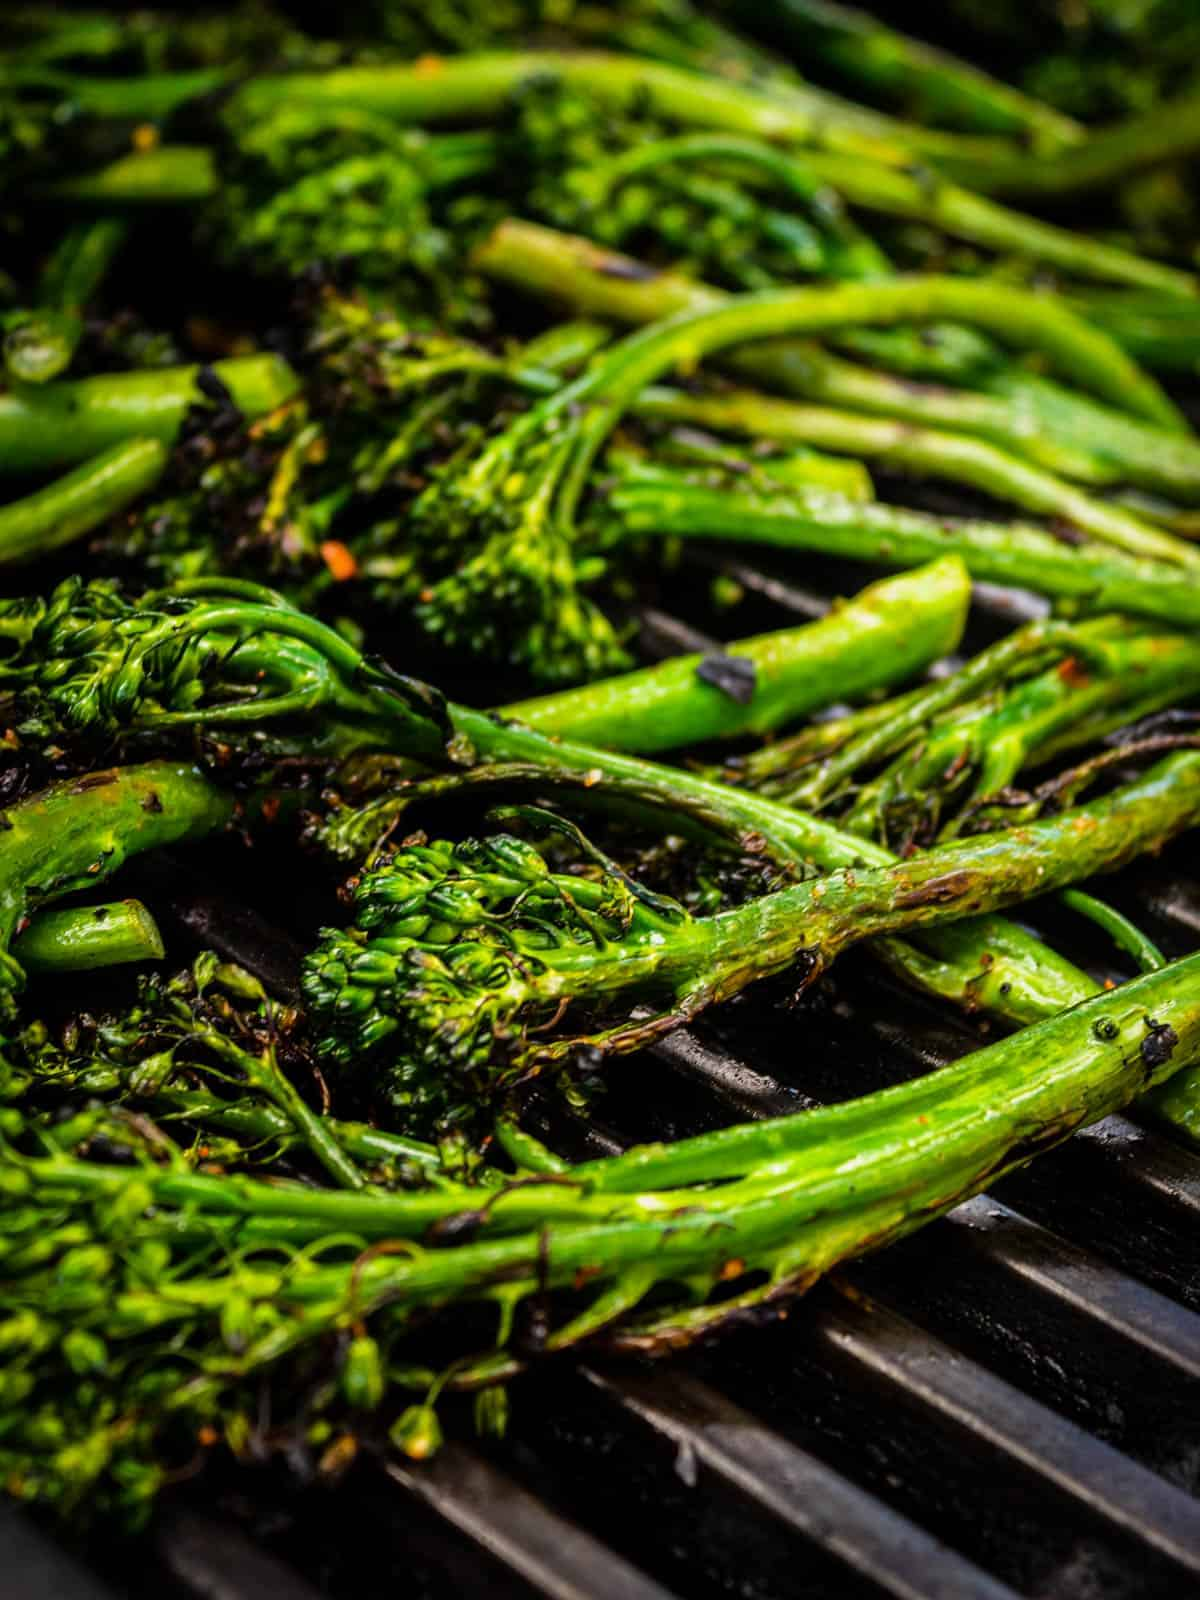 broccolini on the grill